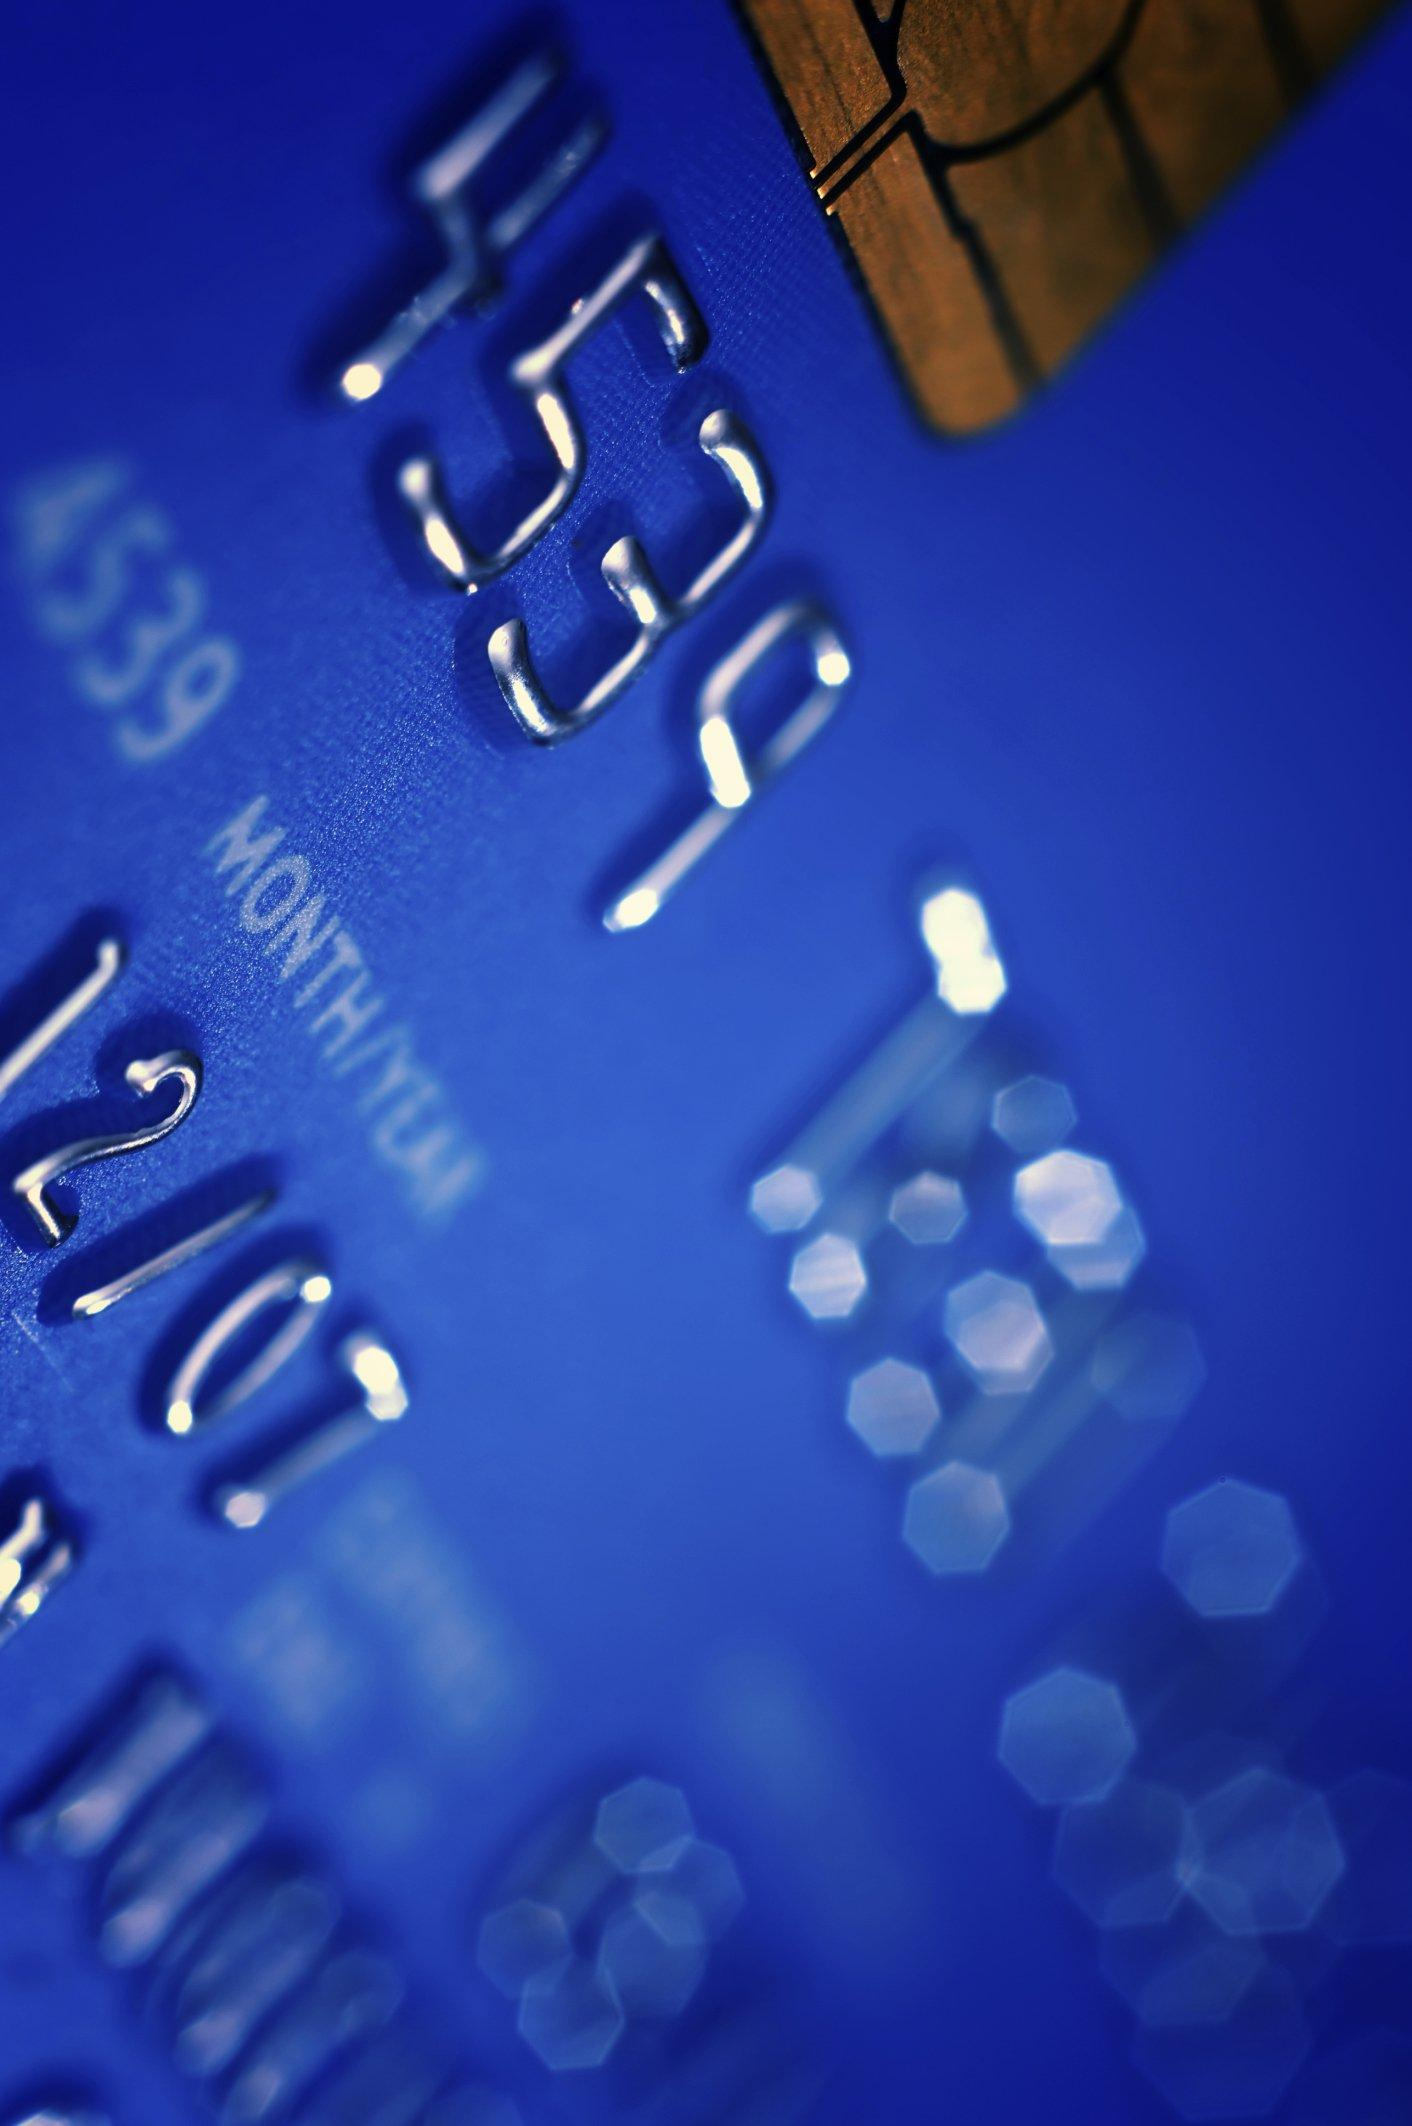 What Happens If I Swipe My Debit Card as Credit - induced.info